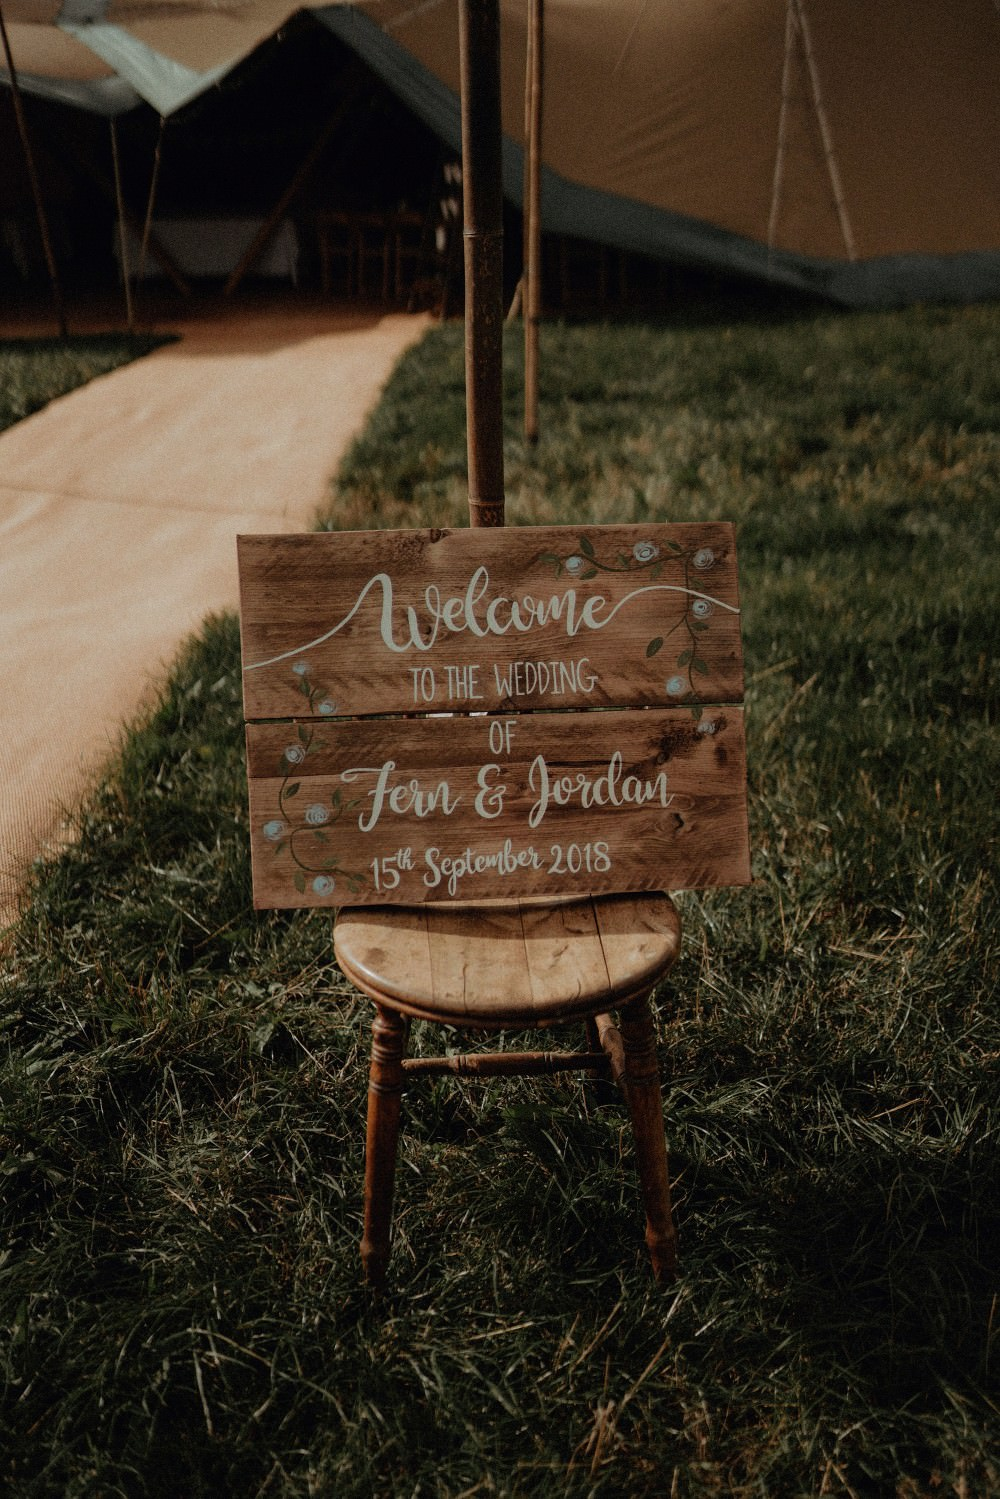 Wooden Rustic Calligraphy Sign Signage Autumn Dark Red Wedding Belle Art Photography